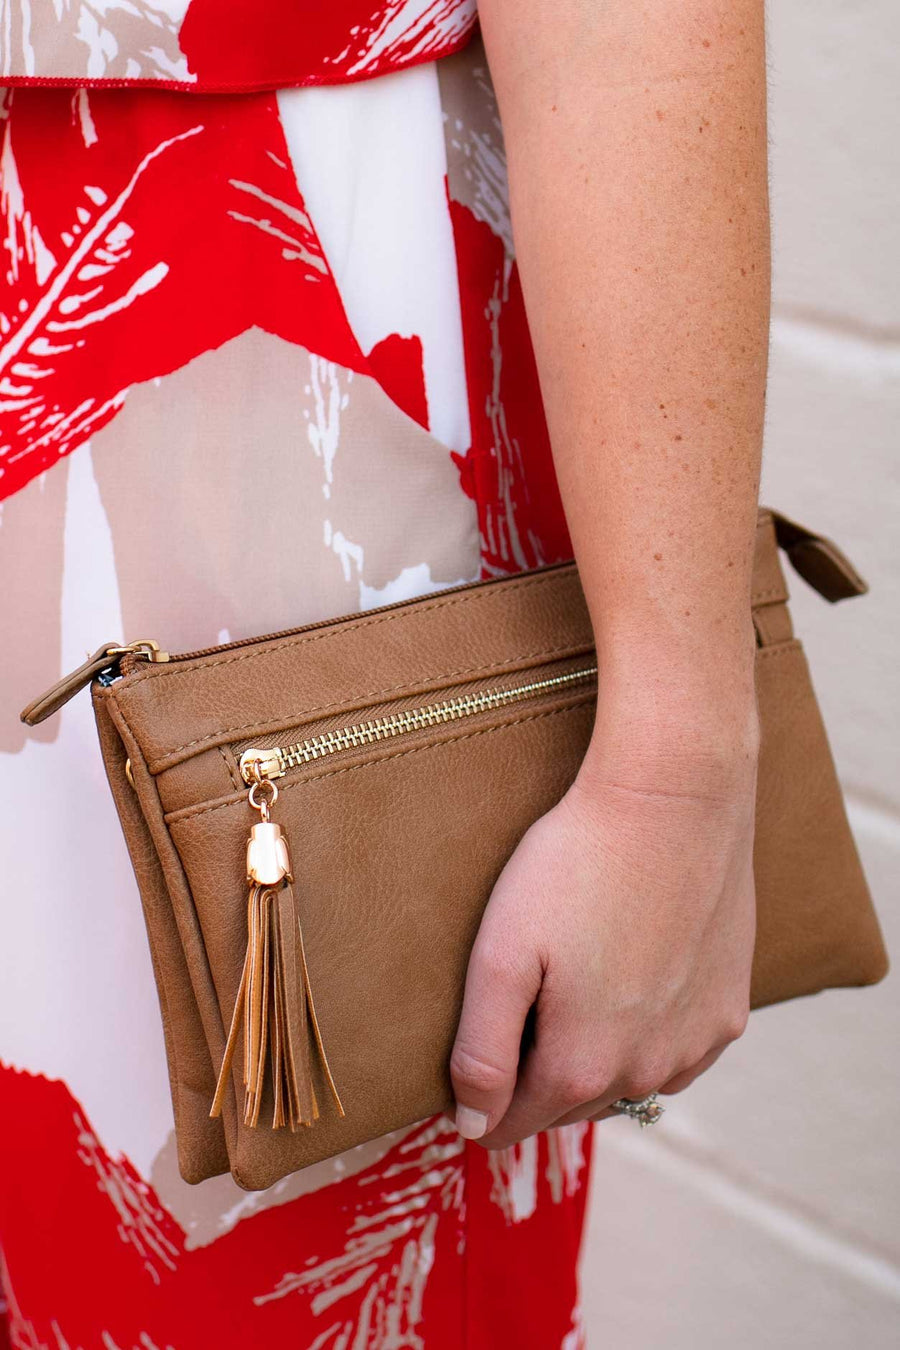 Accessories Every Occasion Camel Cross Body Bag - Lotus Boutique